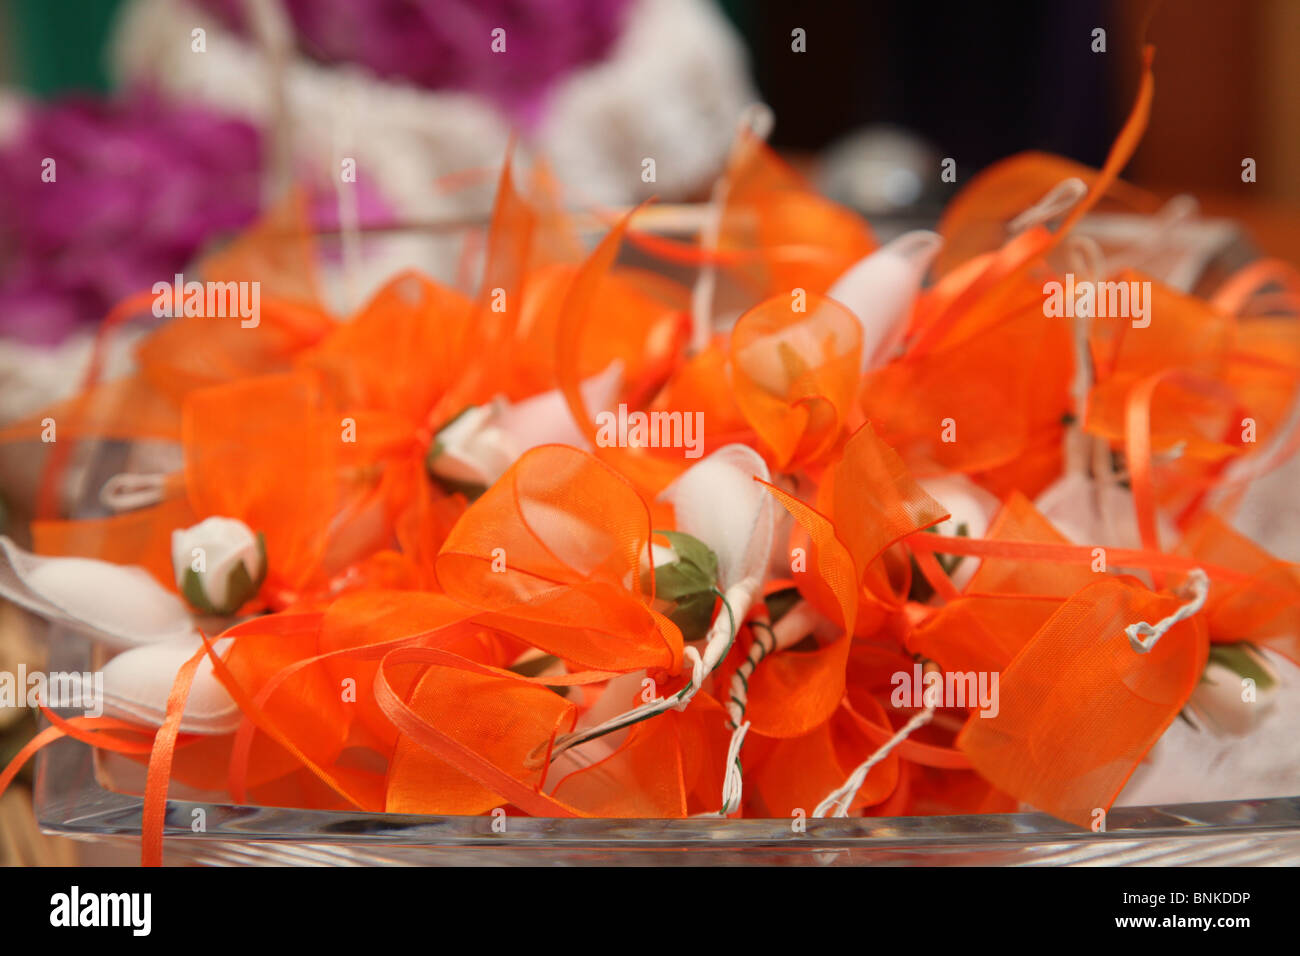 wedding bonbons for the guests in Greece - Stock Image